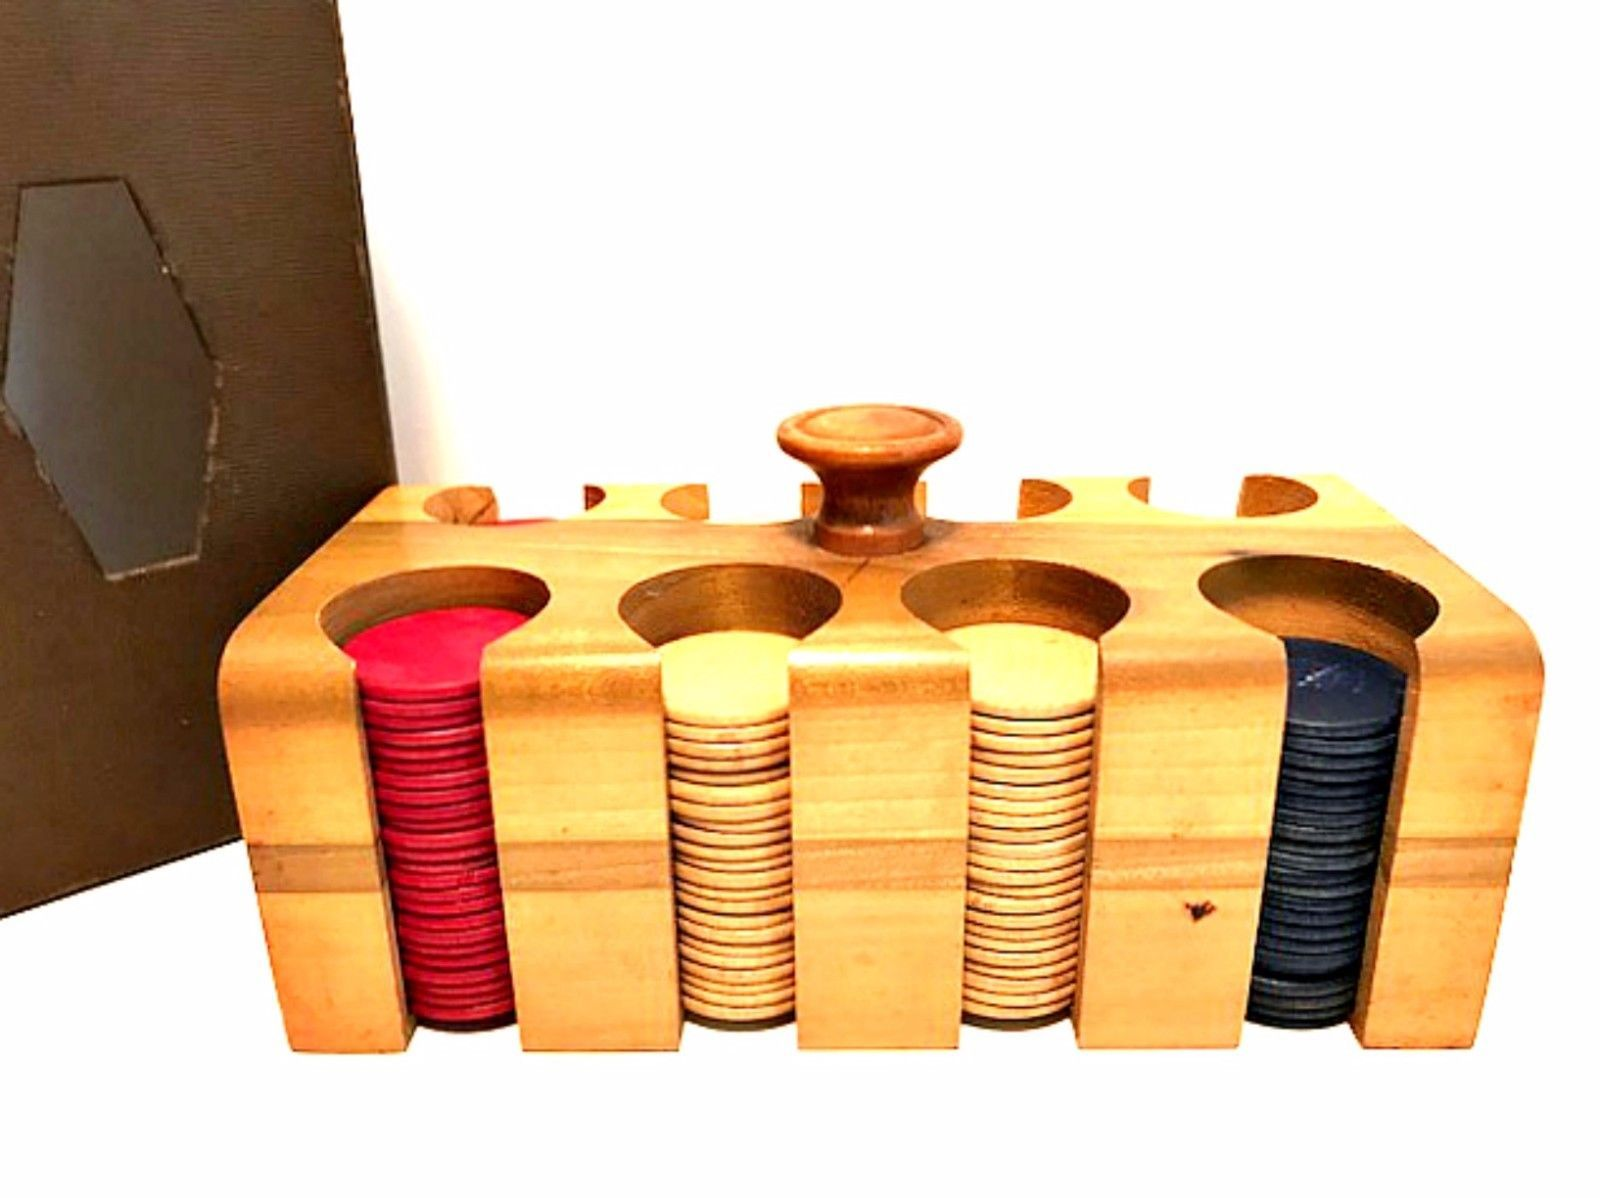 Wooden poker chip caddy direct poker saison 5